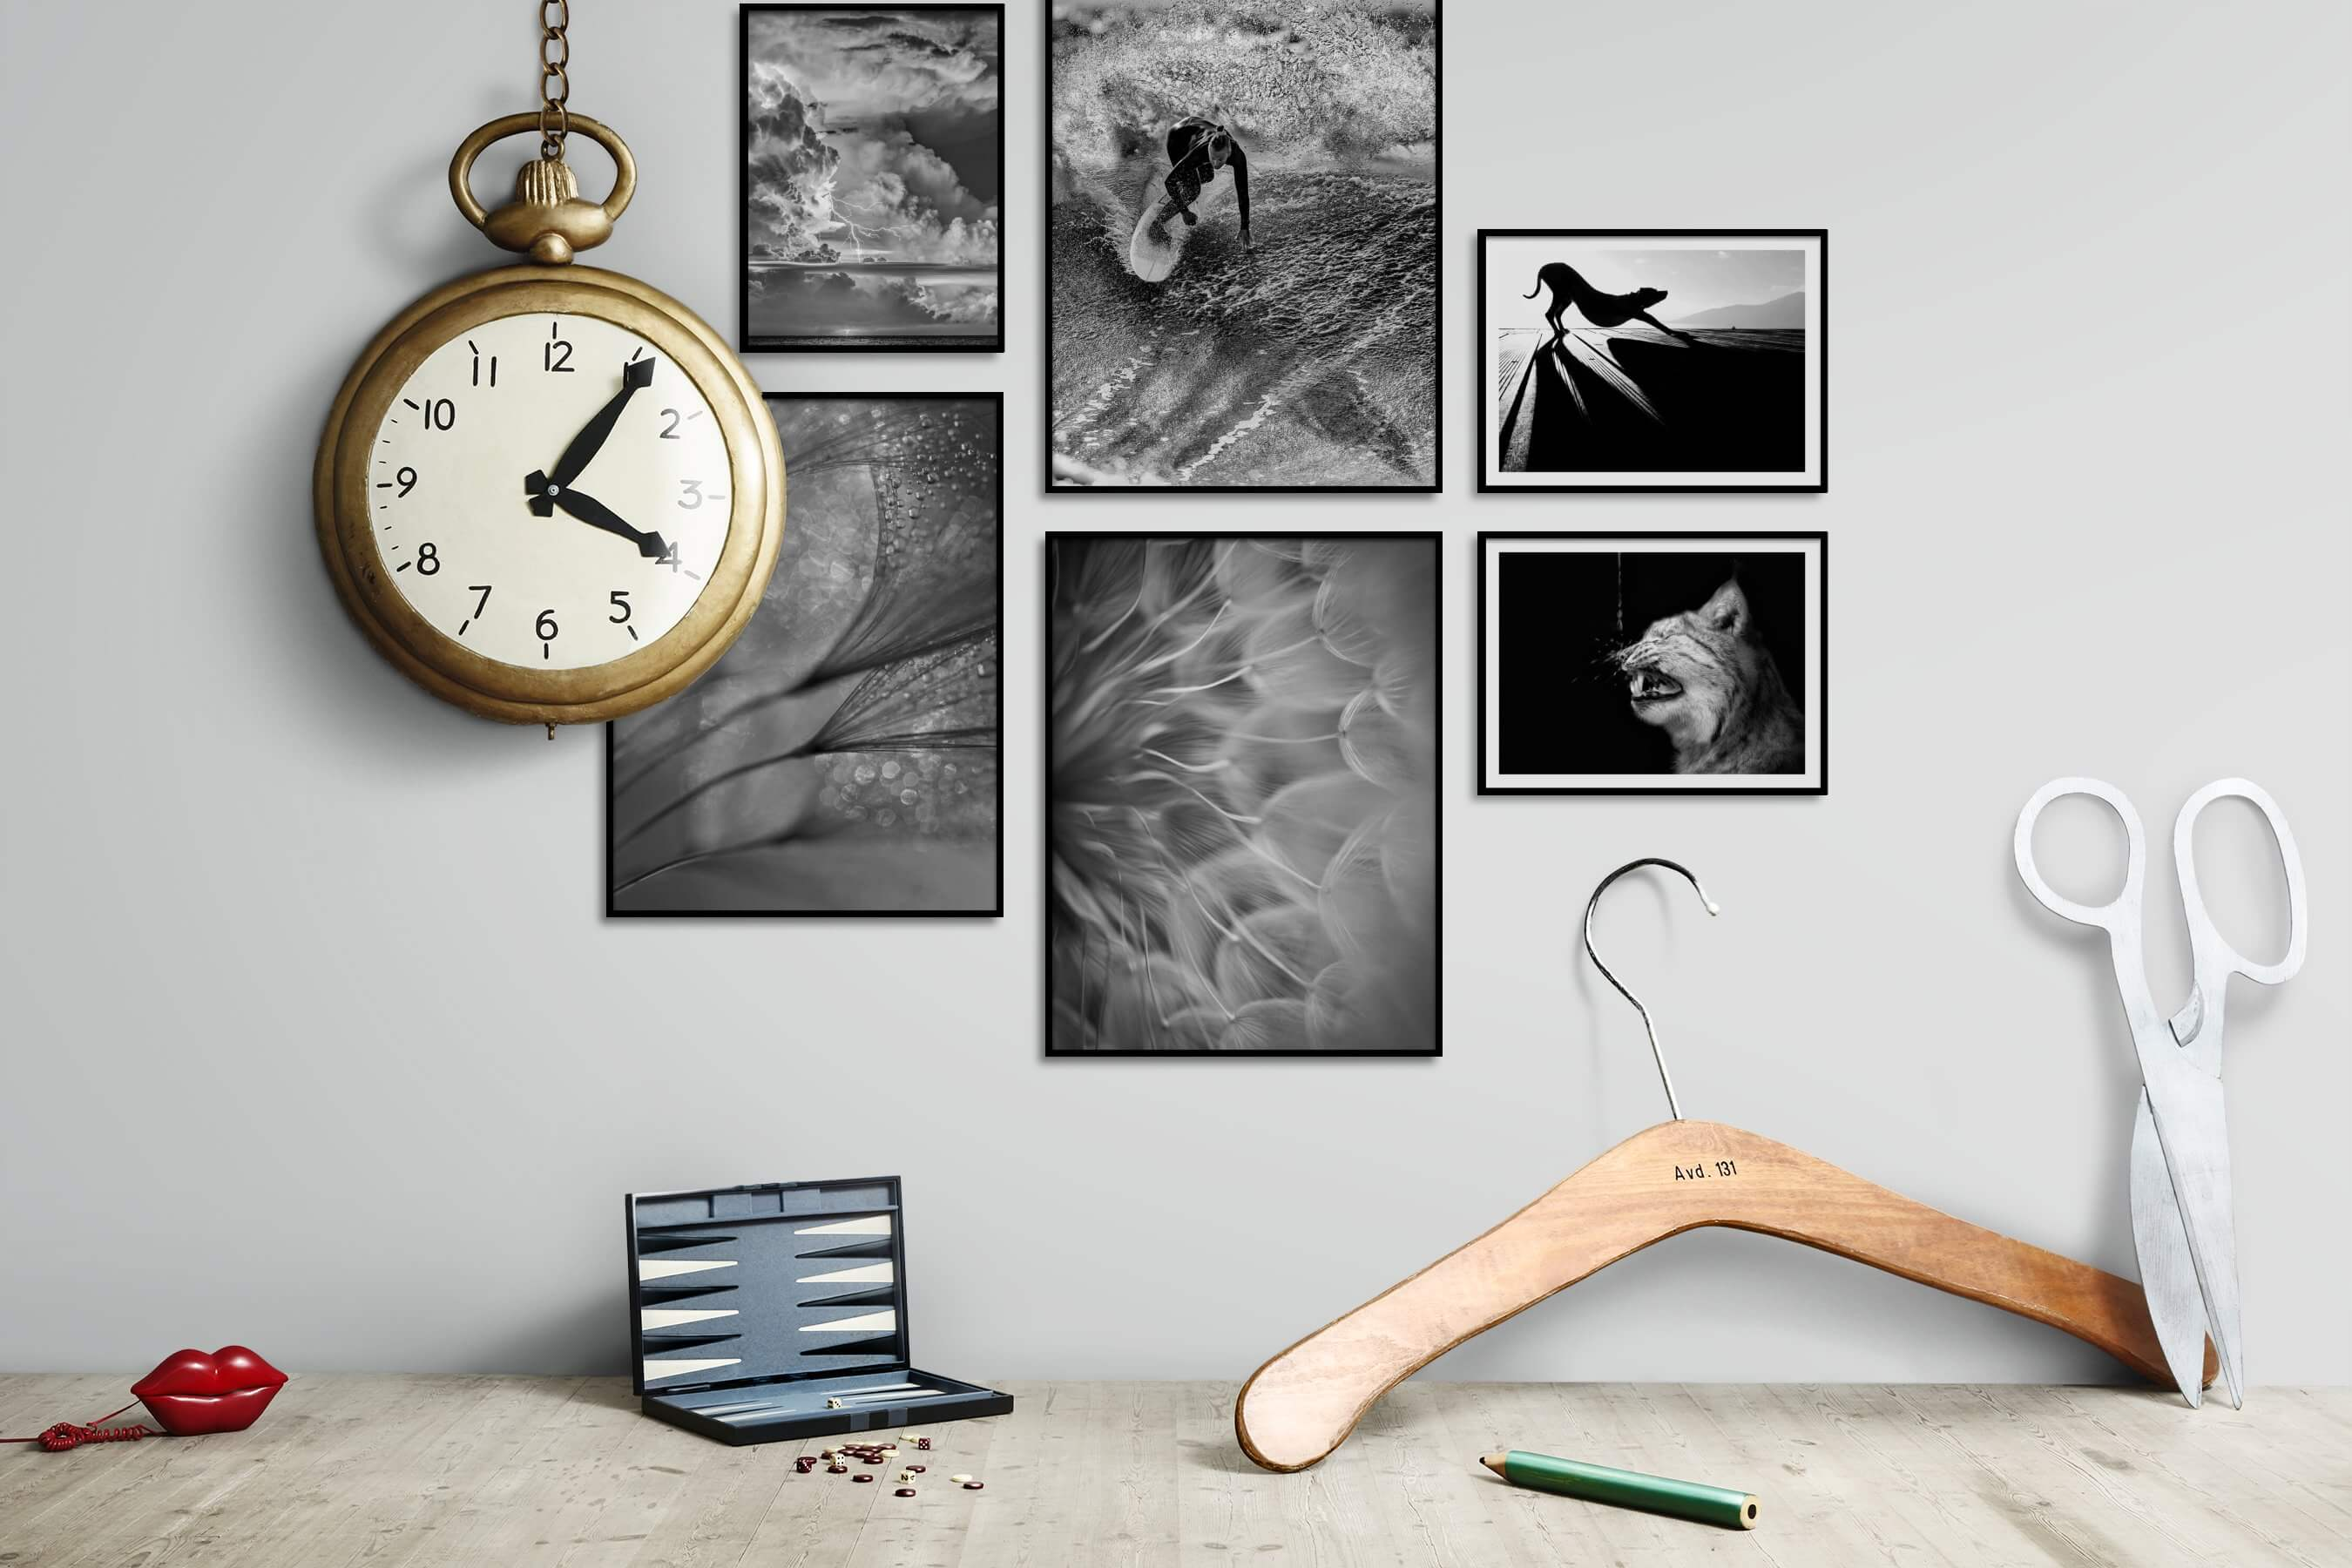 Gallery wall idea with six framed pictures arranged on a wall depicting Black & White, Nature, Beach & Water, Flowers & Plants, For the Minimalist, and Animals